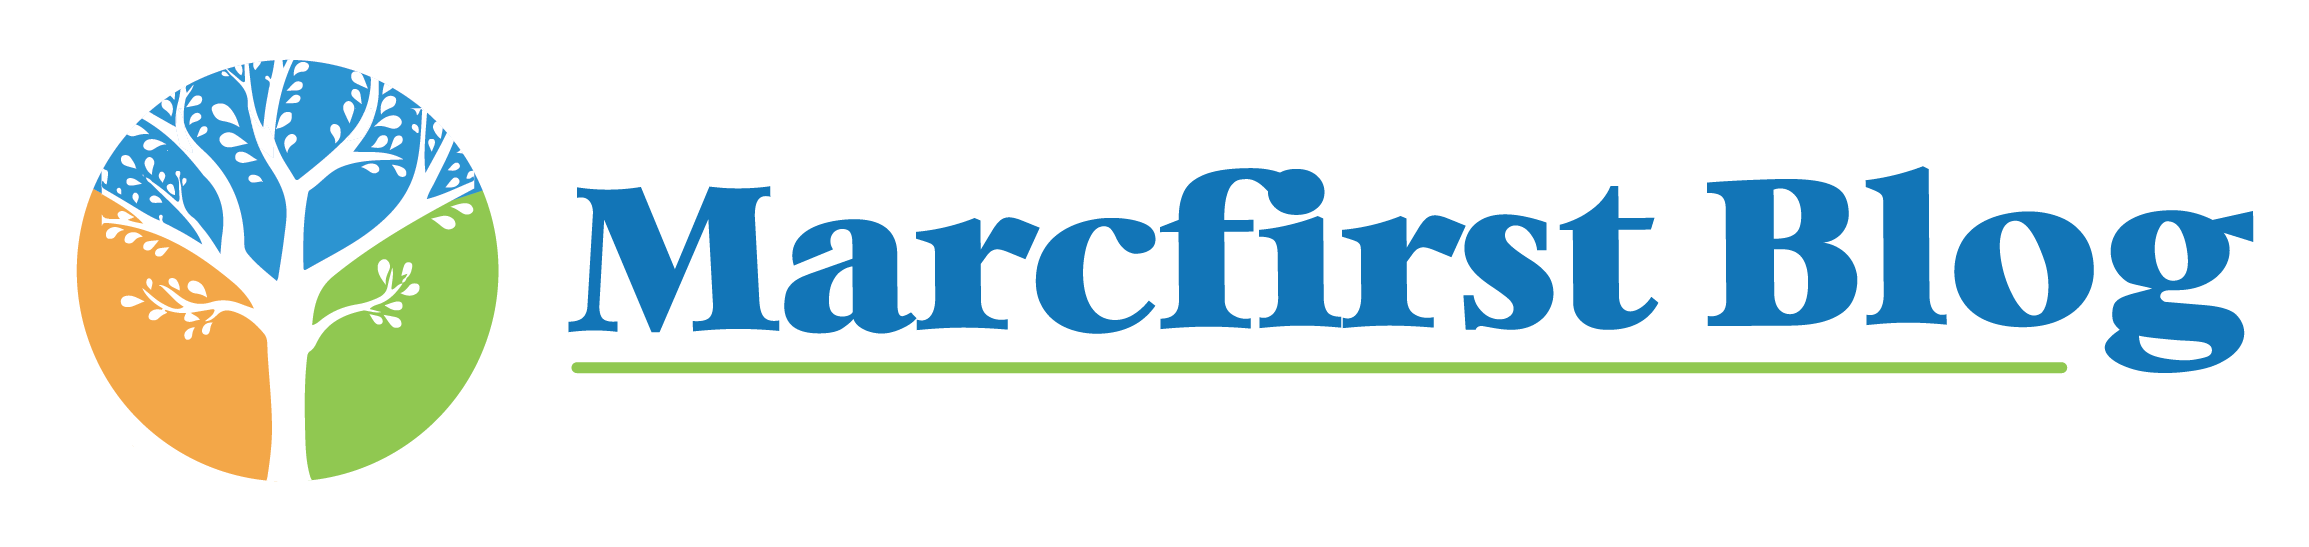 Marcfirst Blog